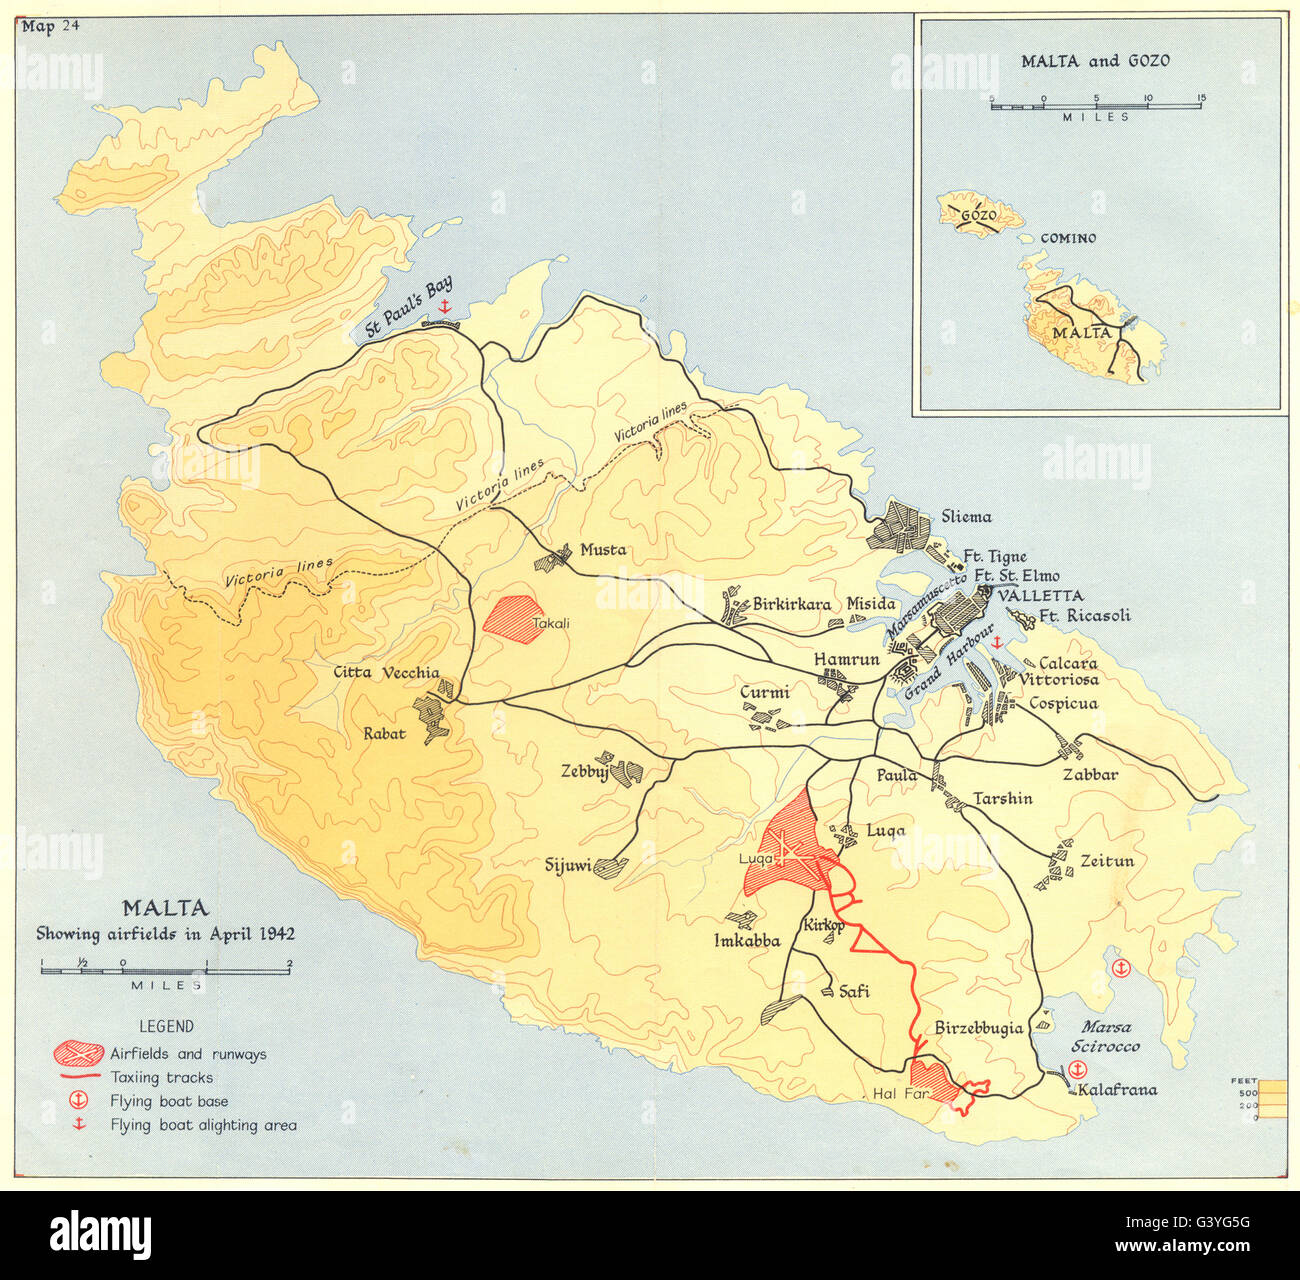 MALTA: April 1942: showing airfields, 1960 vintage map Stock Photo ...